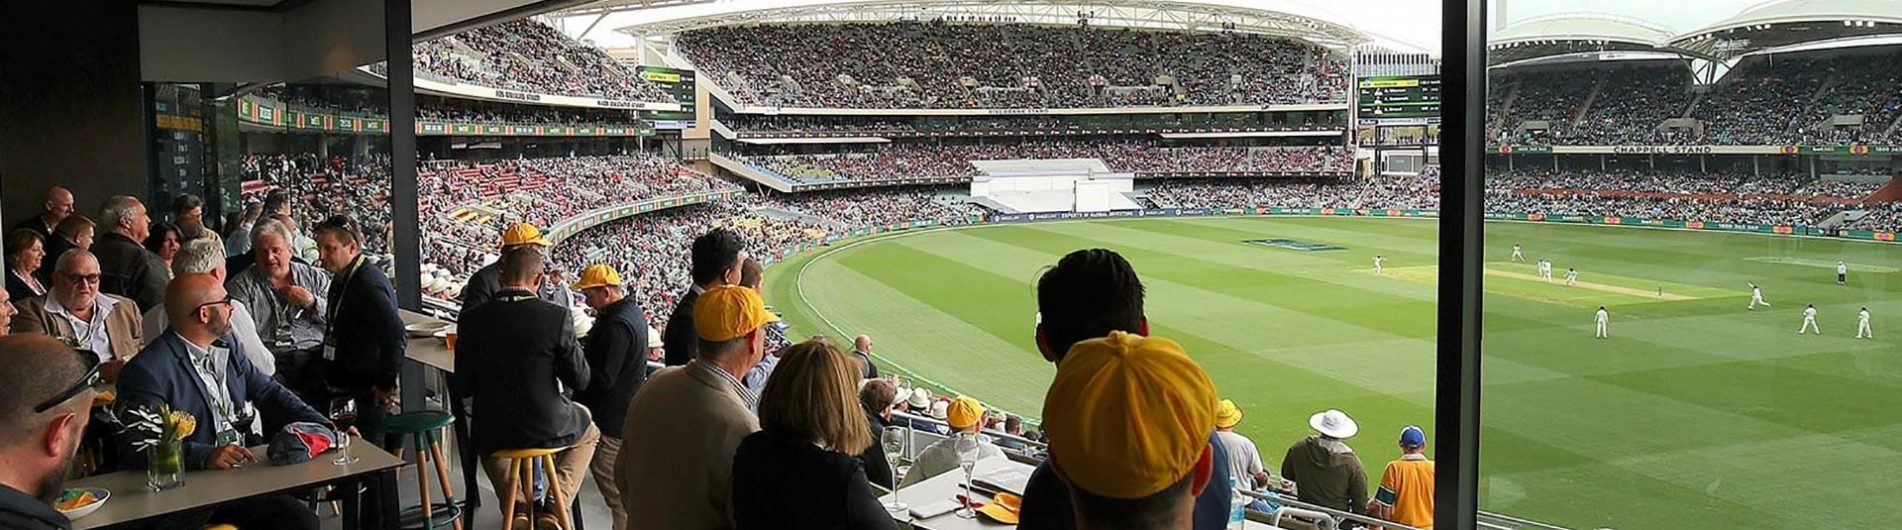 The Ashes 2nd Test Adelaide